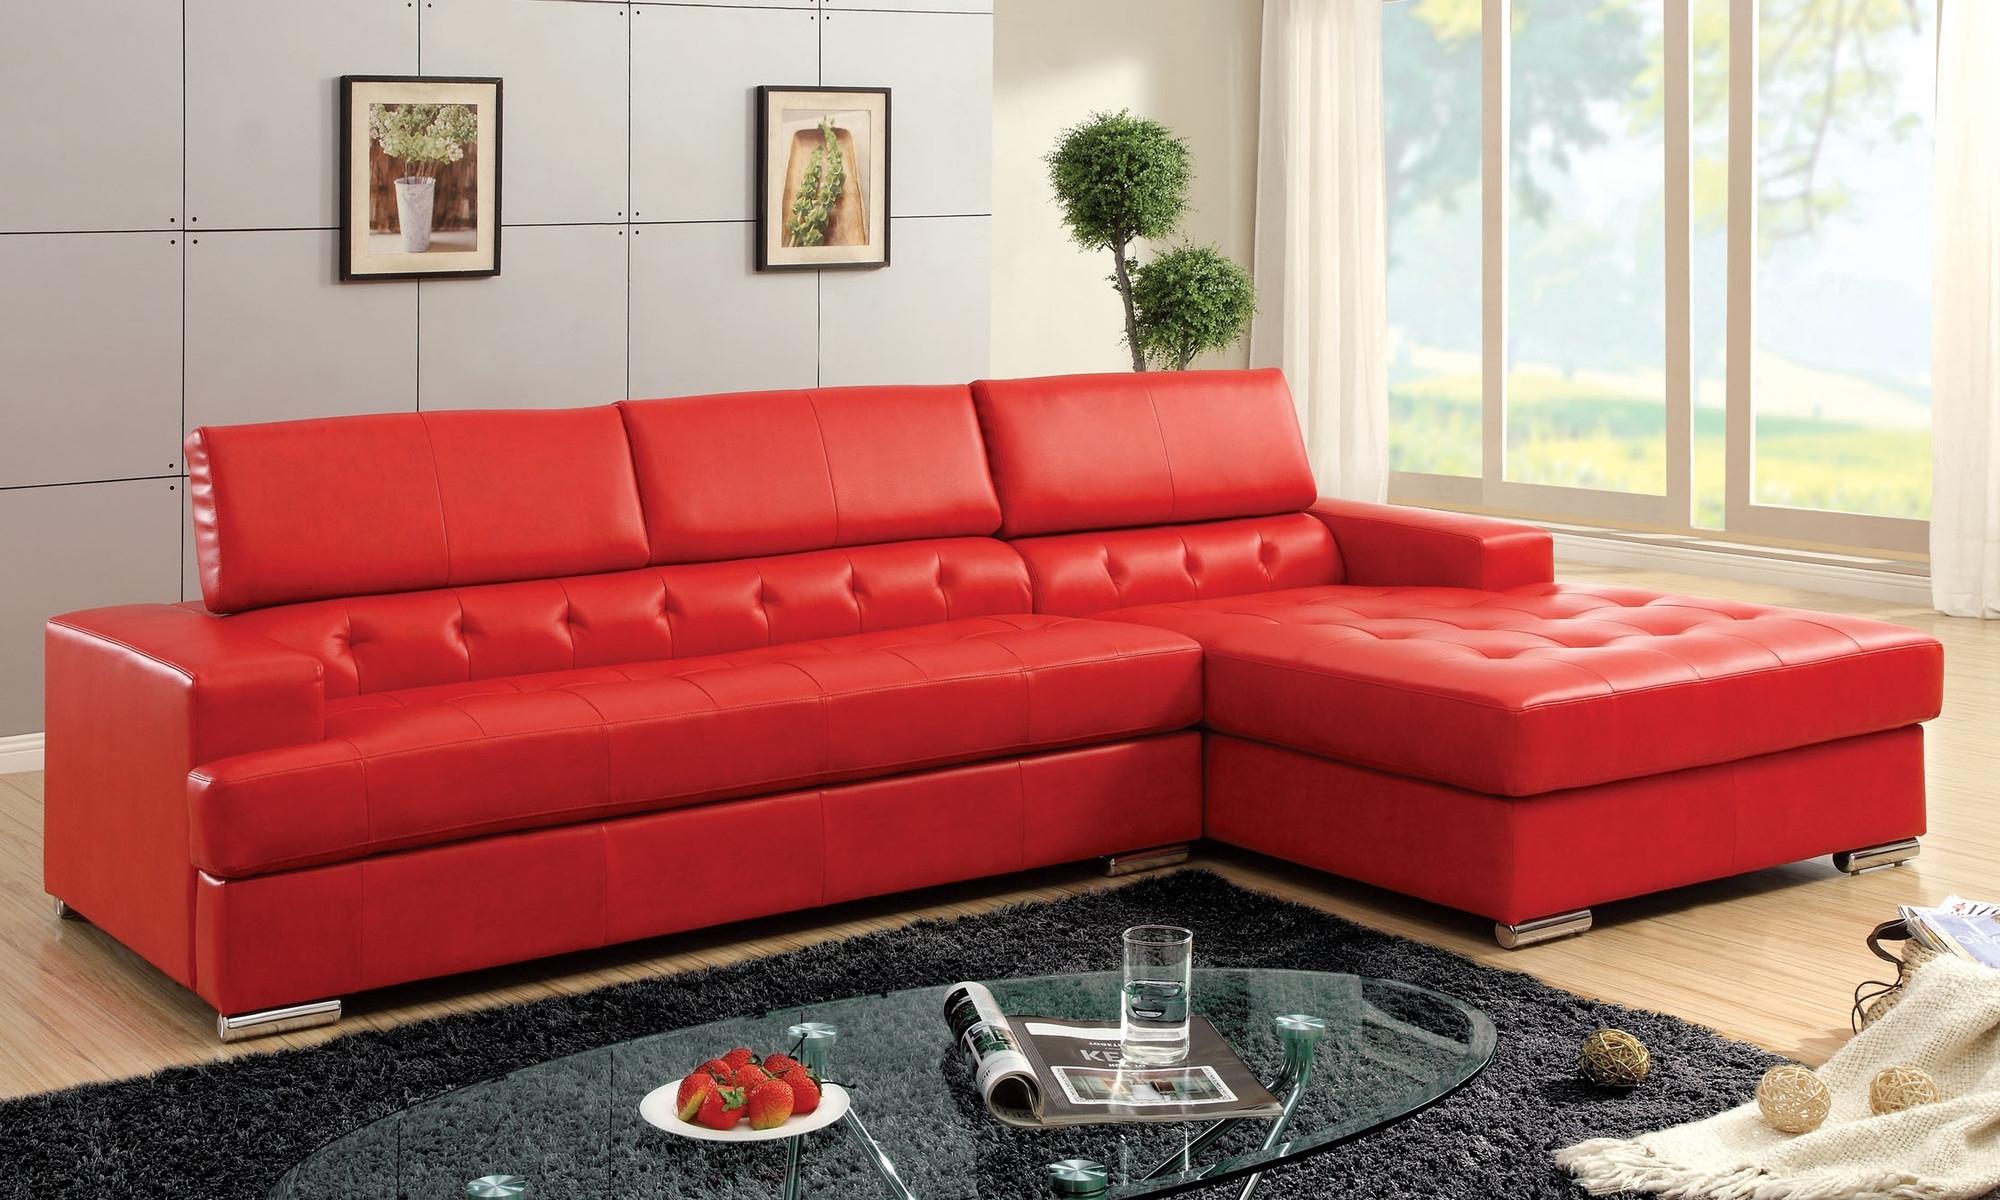 Tufted Sectional Sofas With Chaise For Current Glamorous Genuine Leather Chesterfield Sofa As Well As Modern (View 6 of 15)